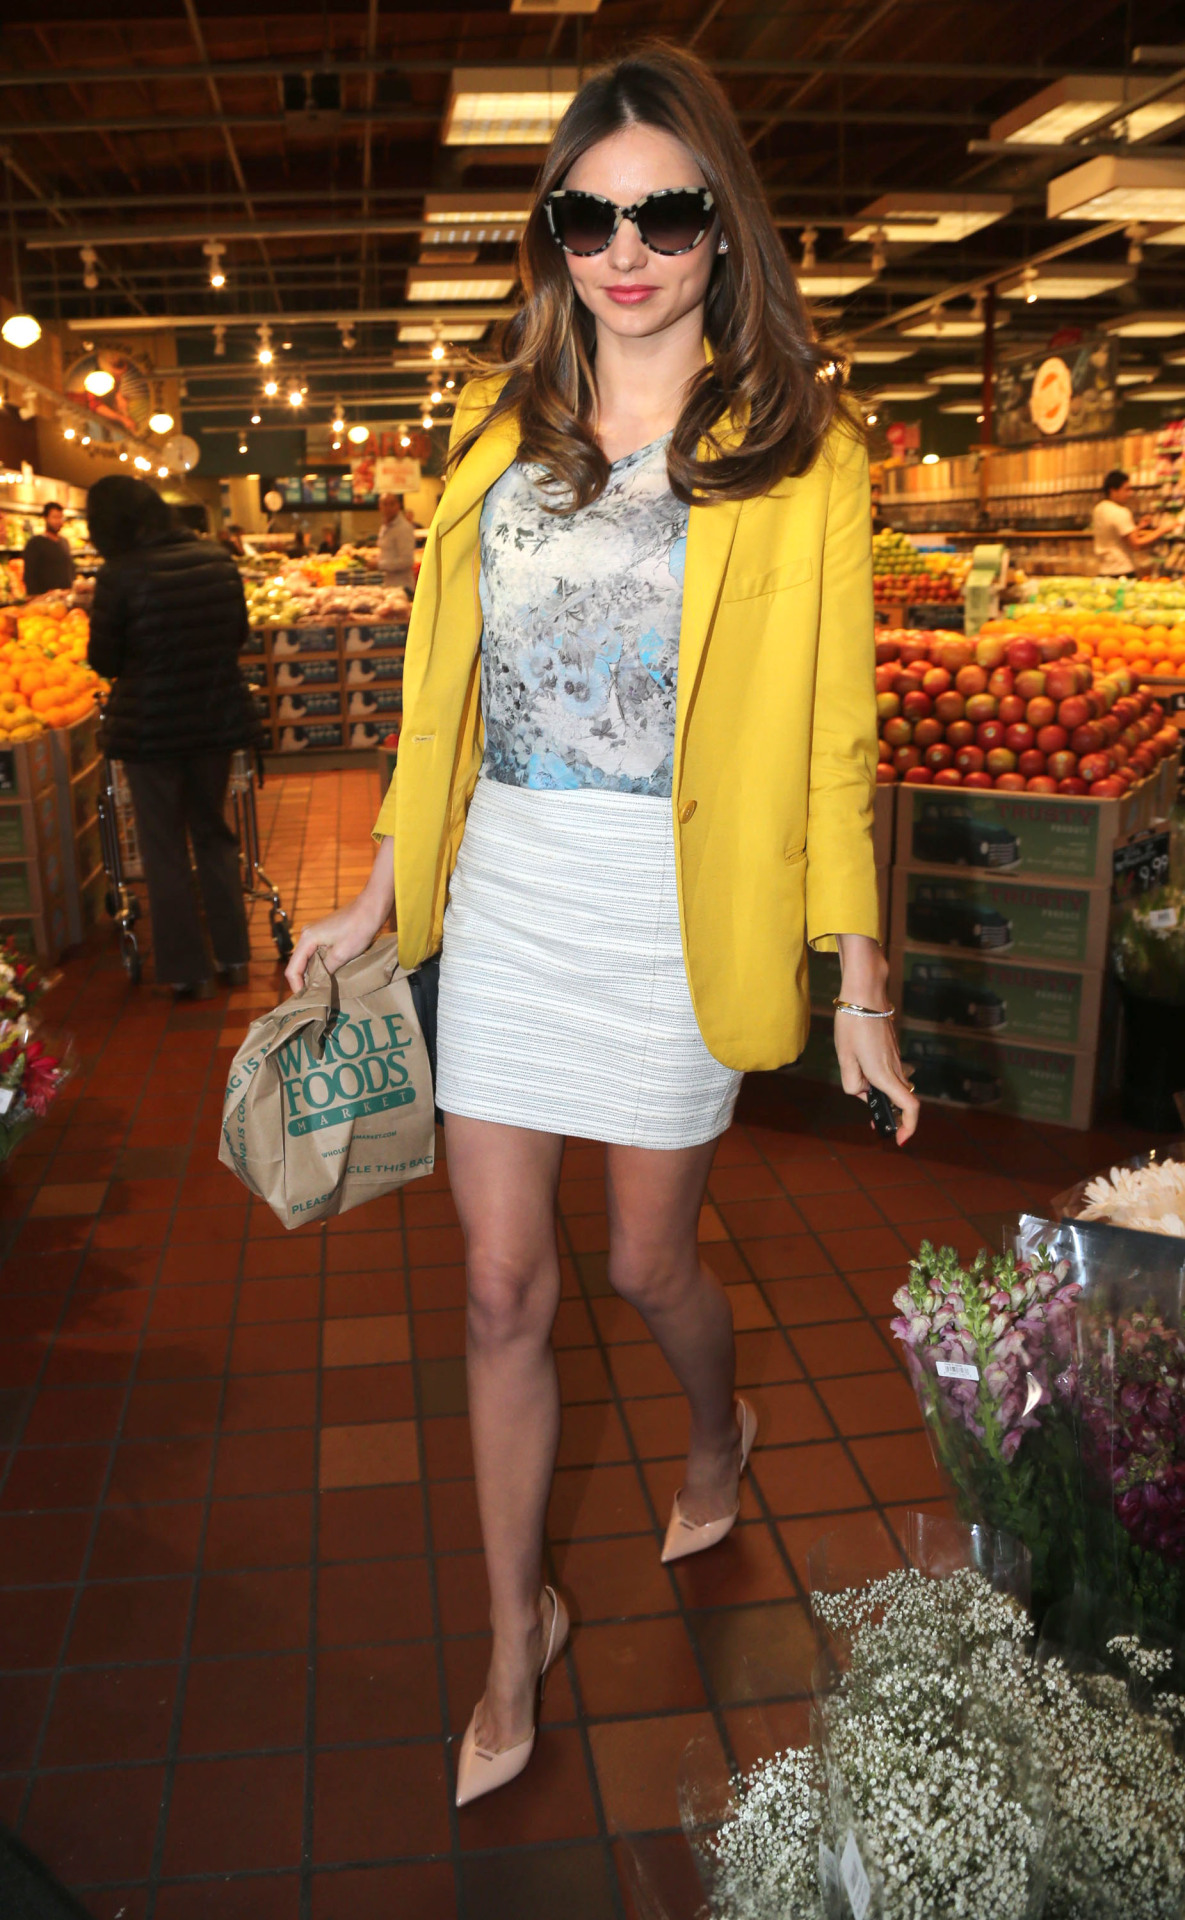 Only Miranda Kerr would look so gorgeous at a grocery store.